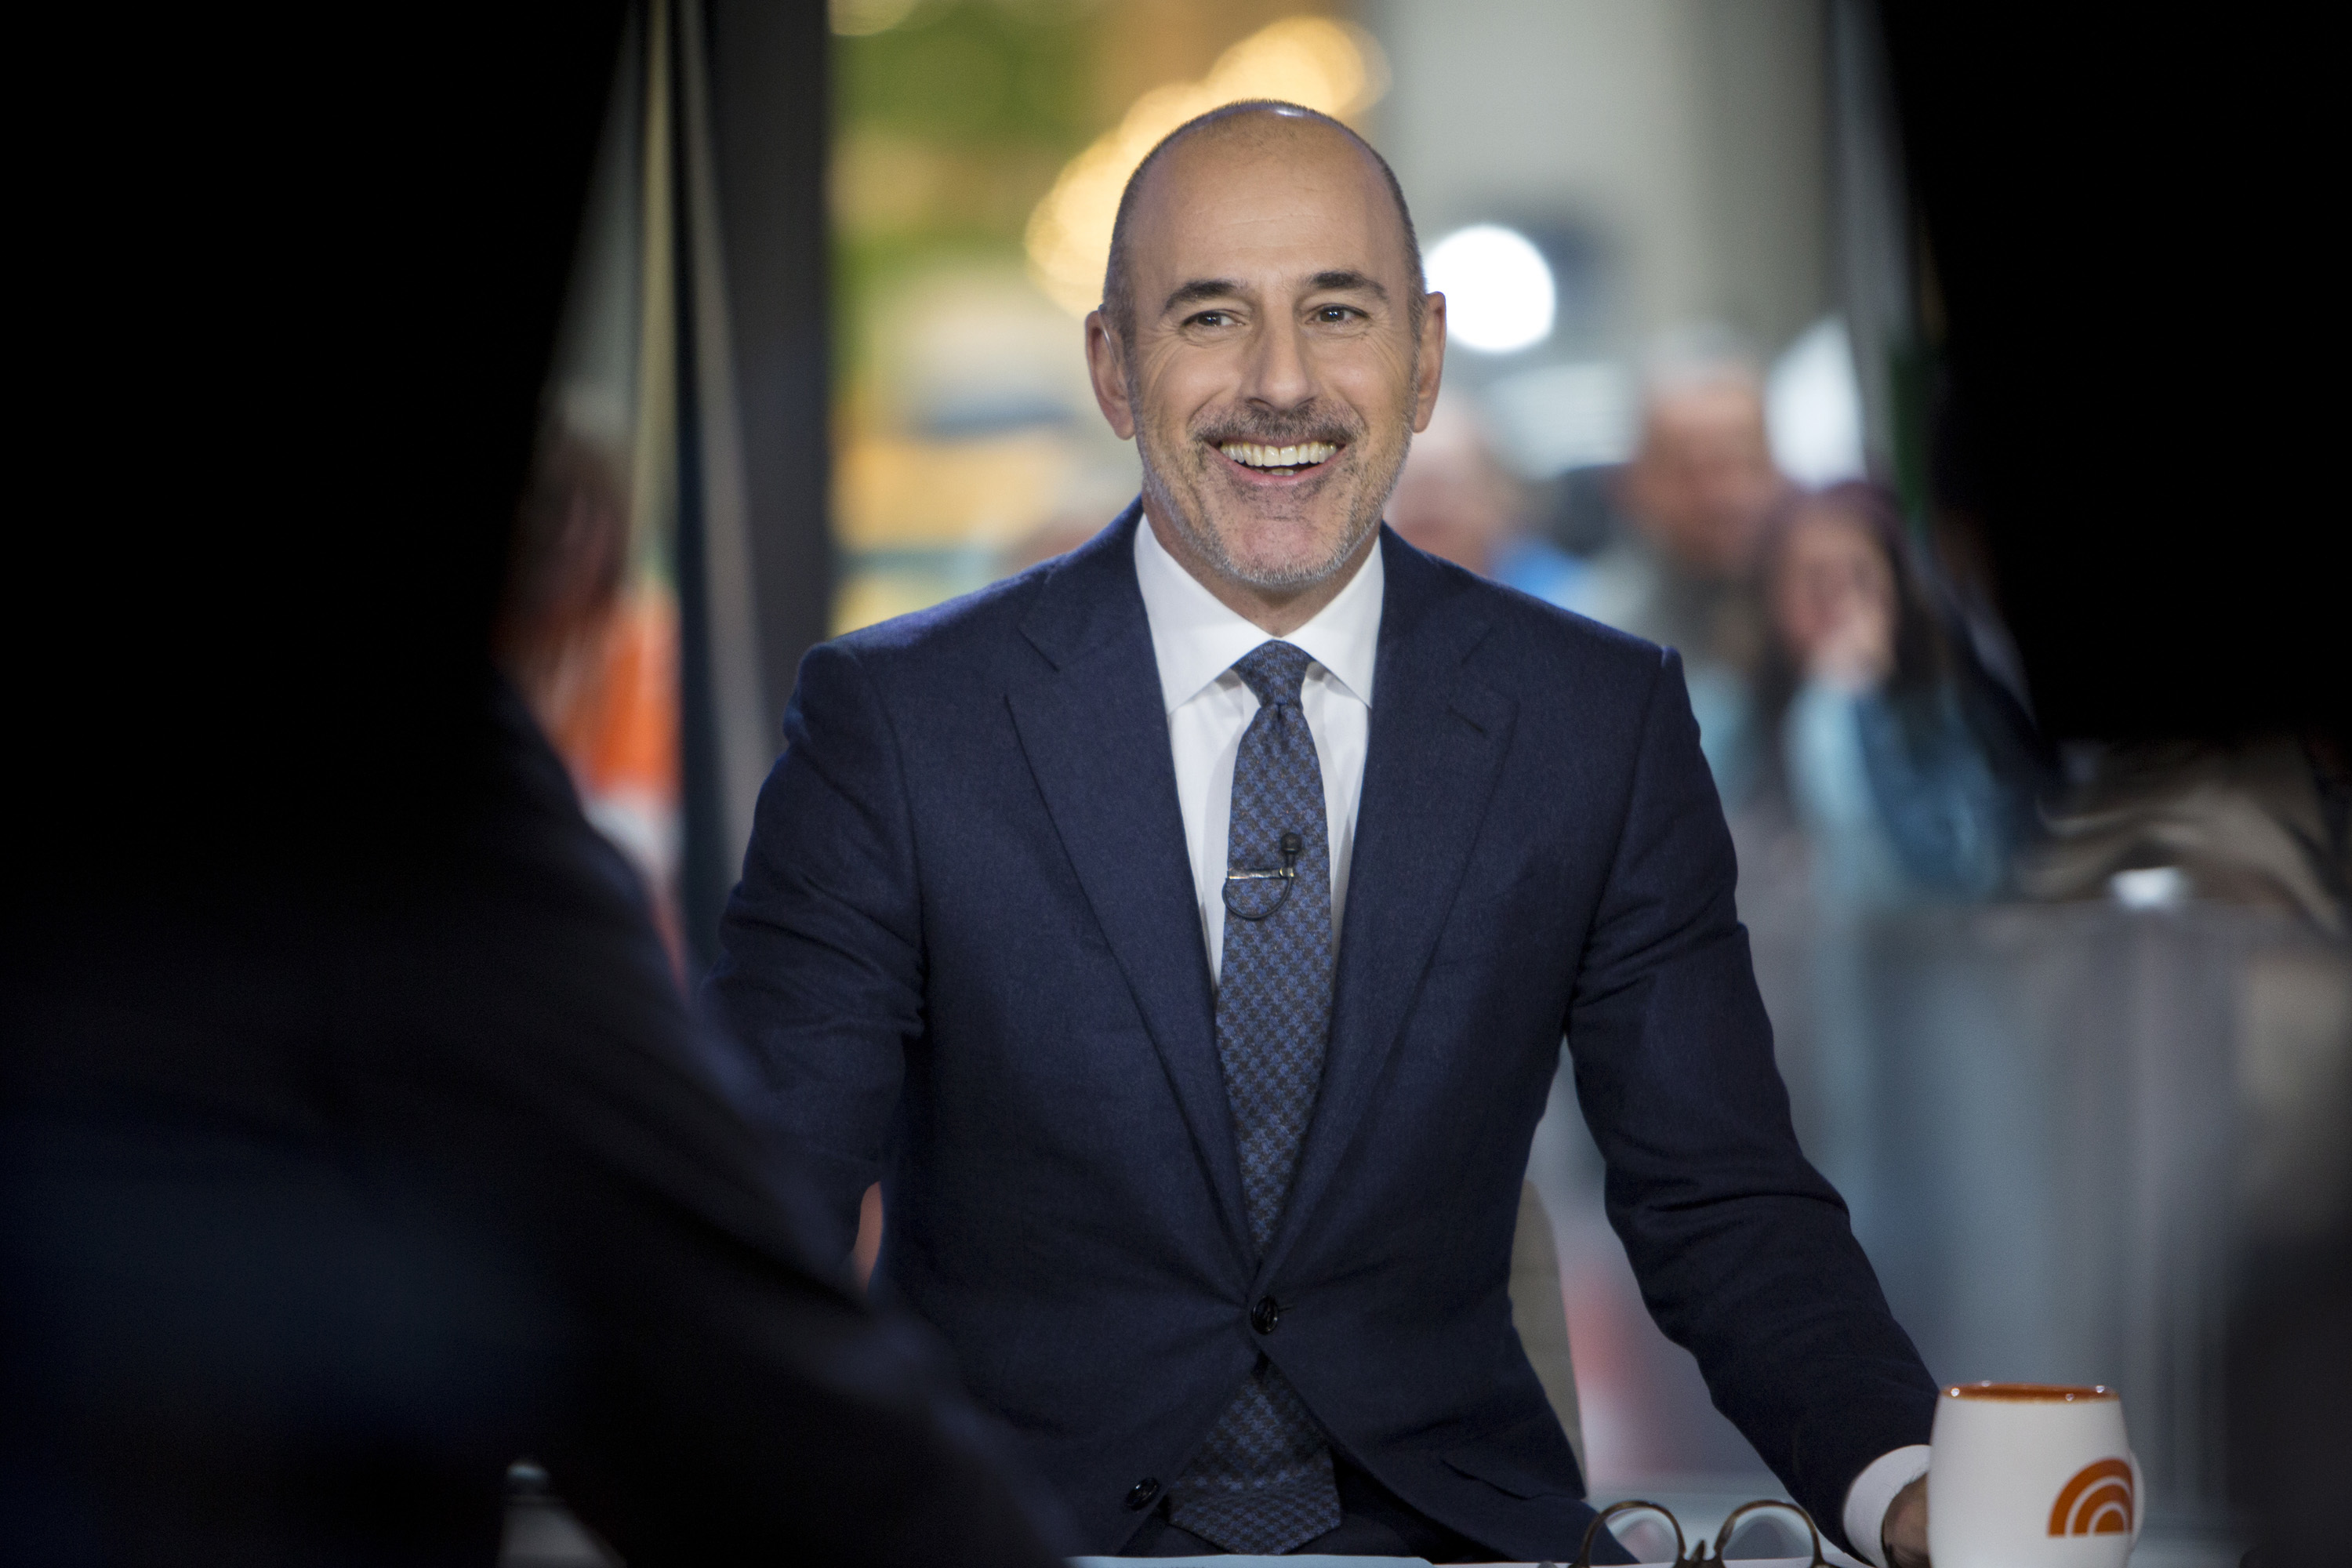 Is Megyn Kelly The Frontrunner To Replace Matt Lauer On 'Today'?